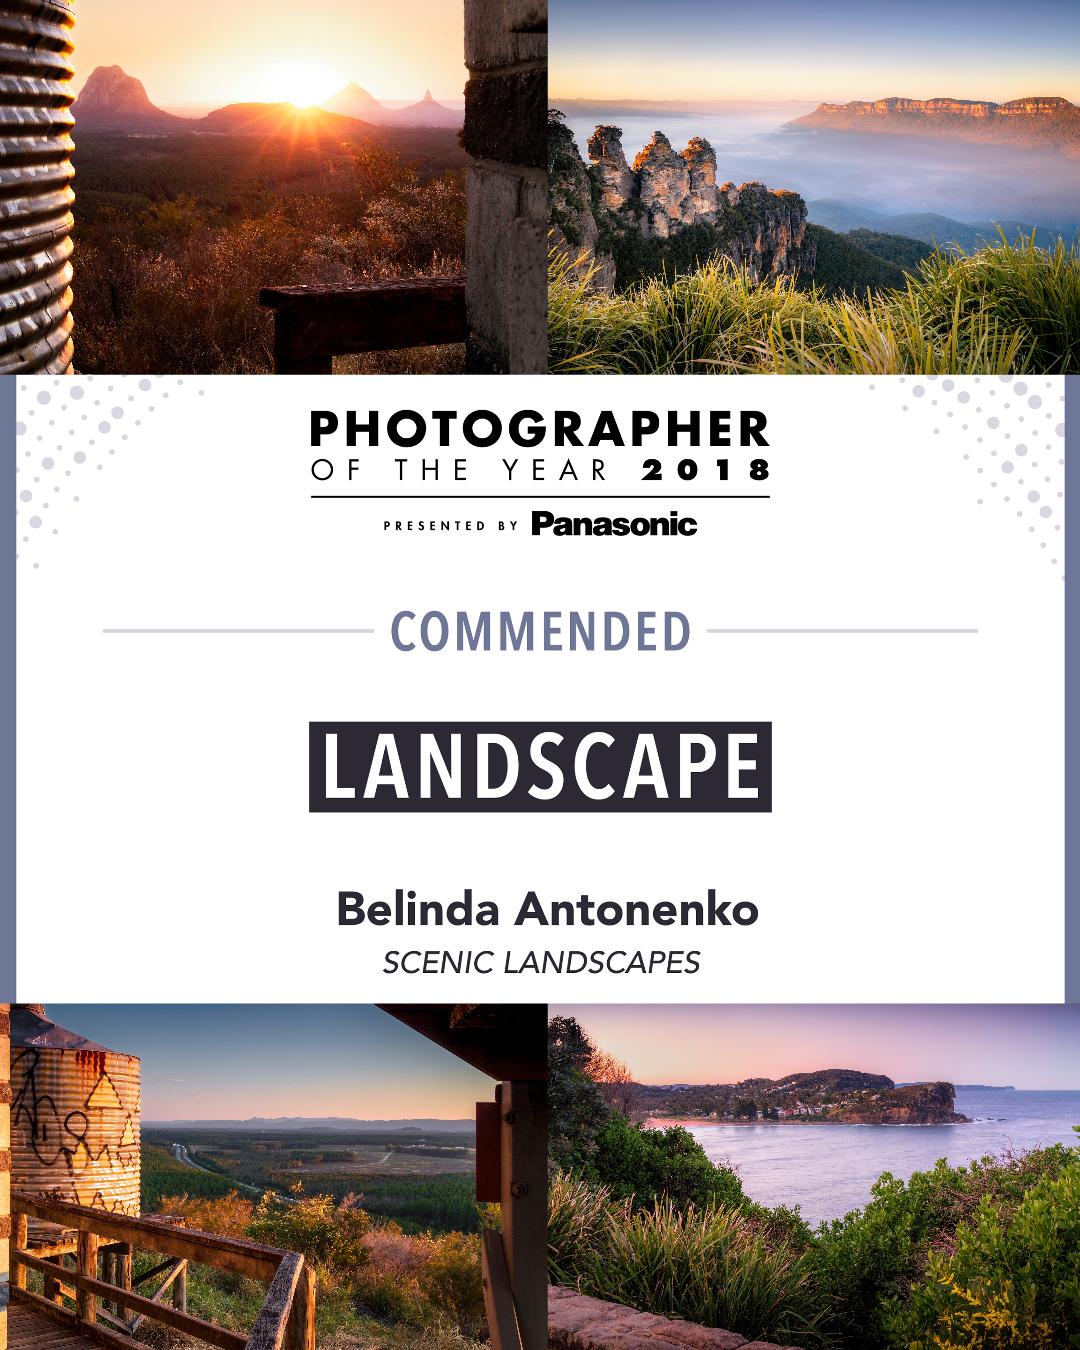 Photography - Photographer Of The Year Award - Scenic Landscapes